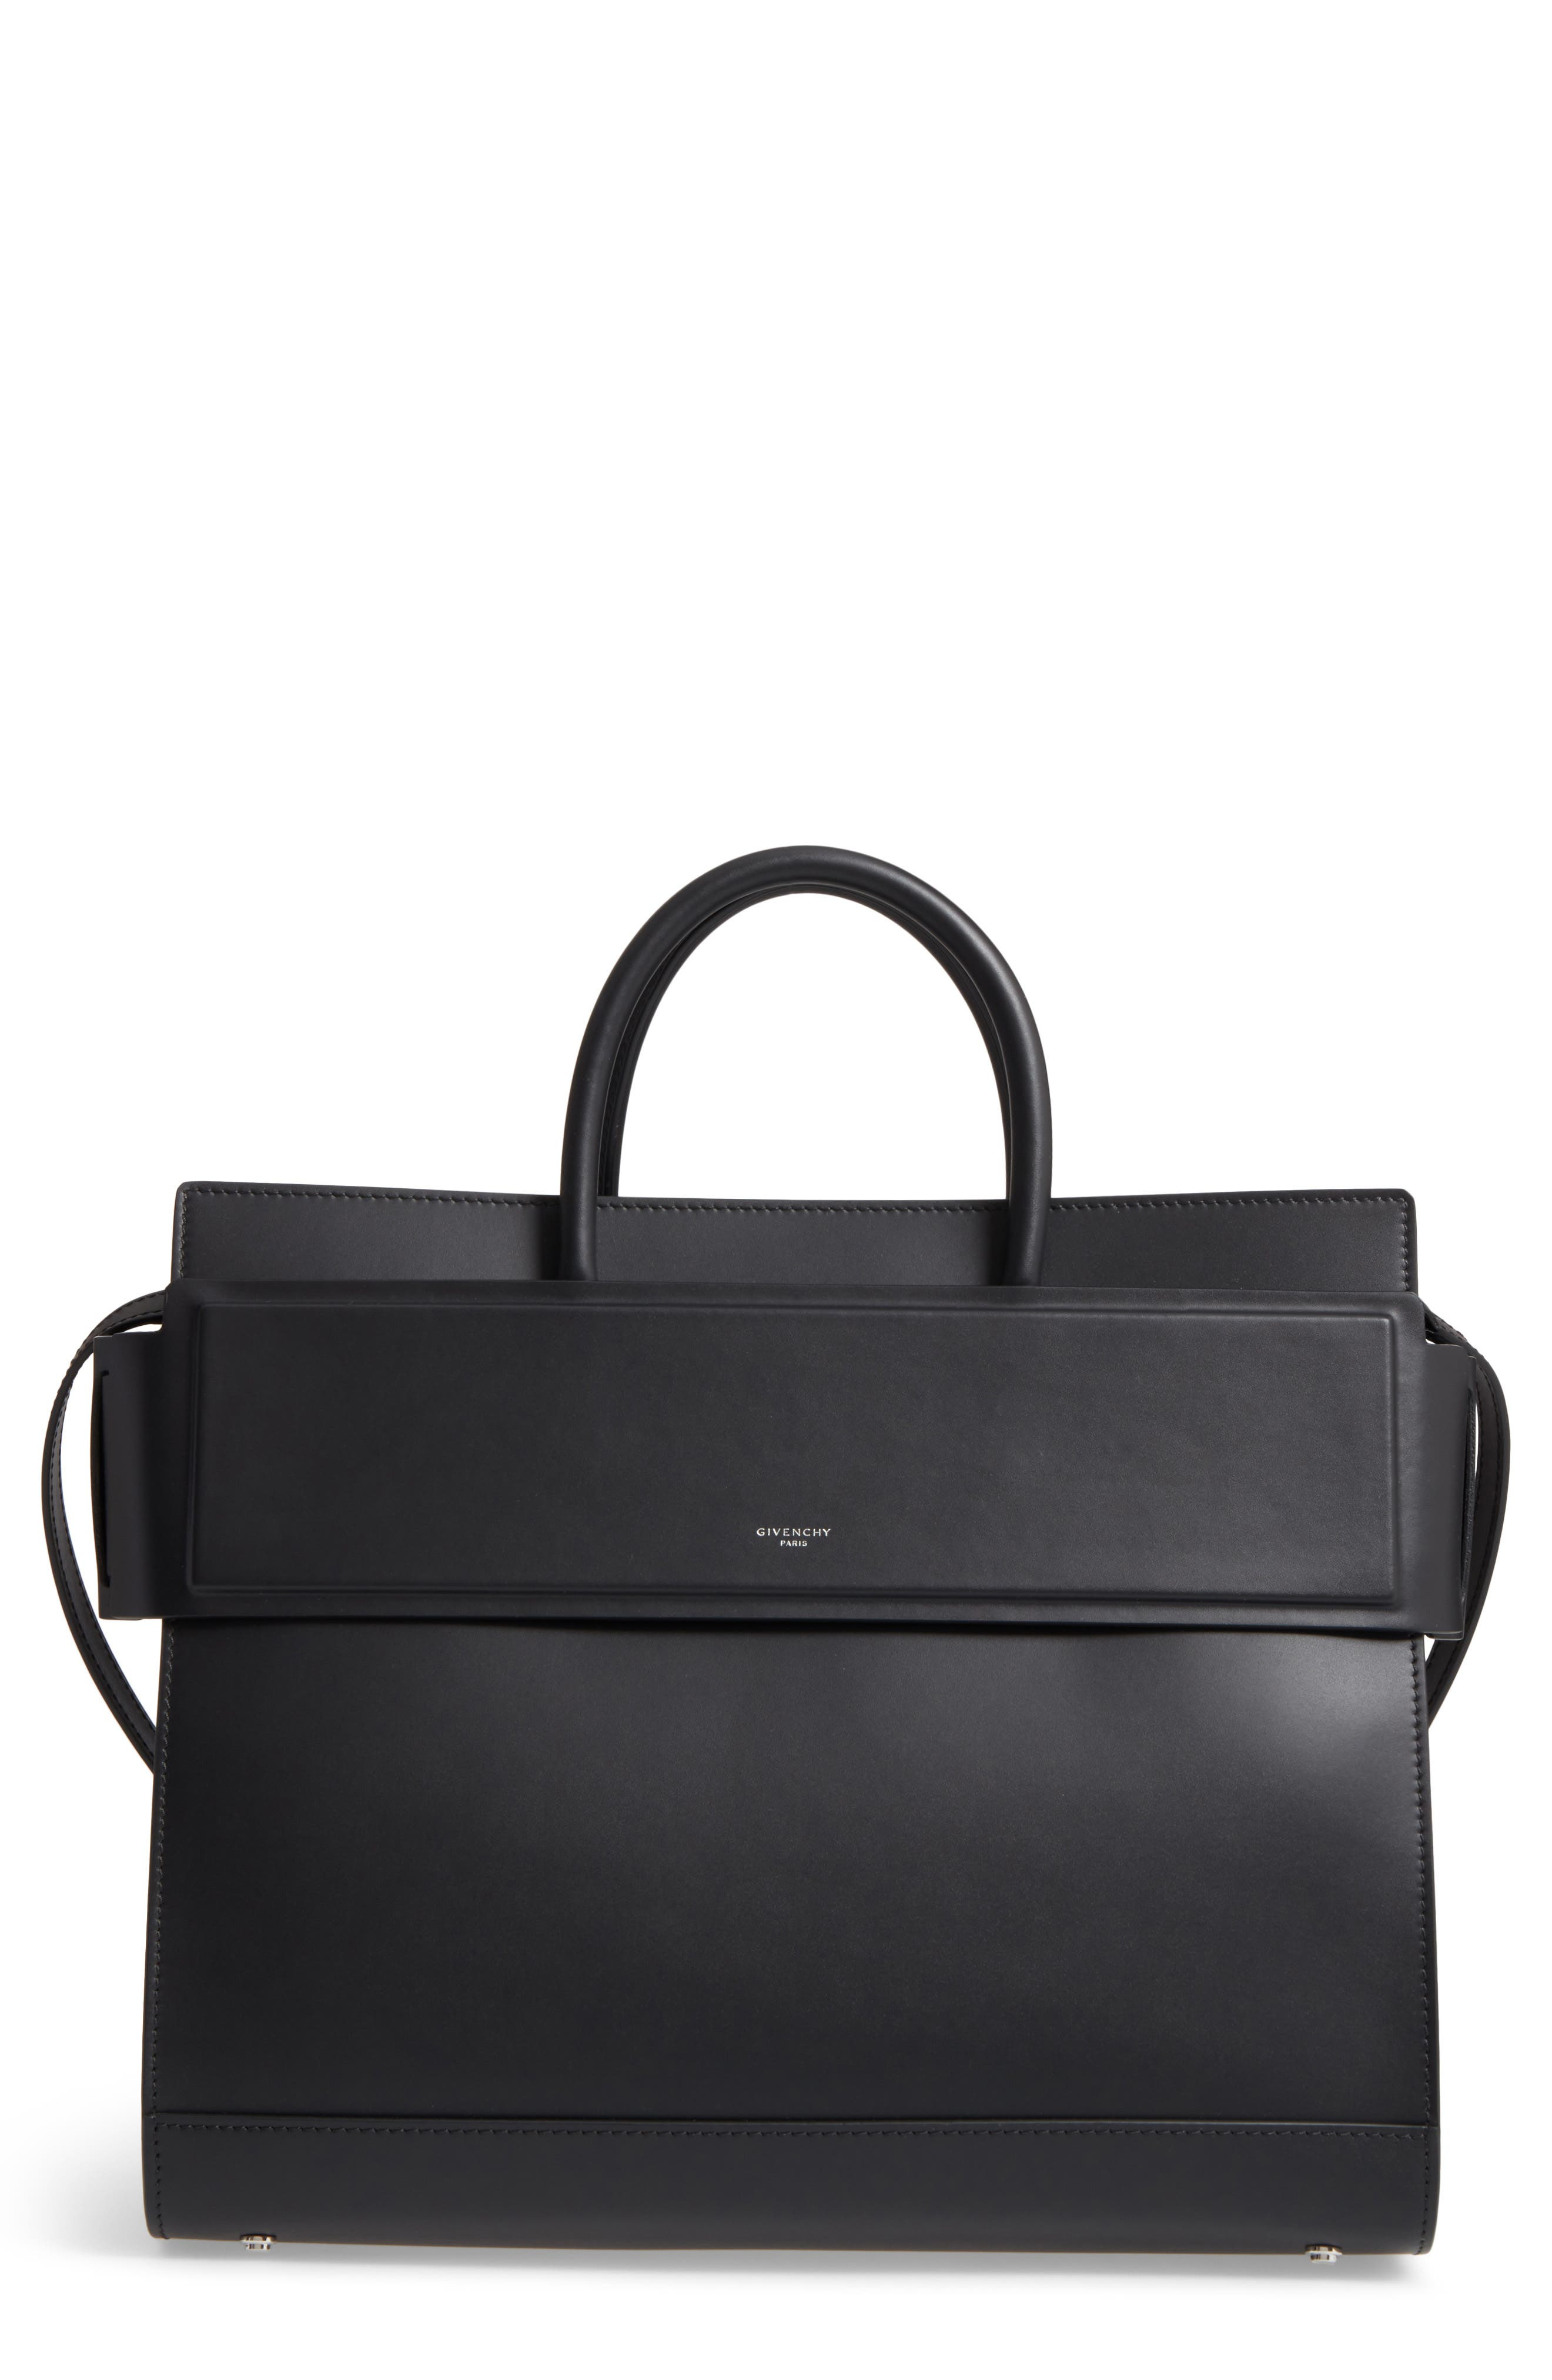 Horizon Calfskin Leather Tote,                         Main,                         color, BLACK